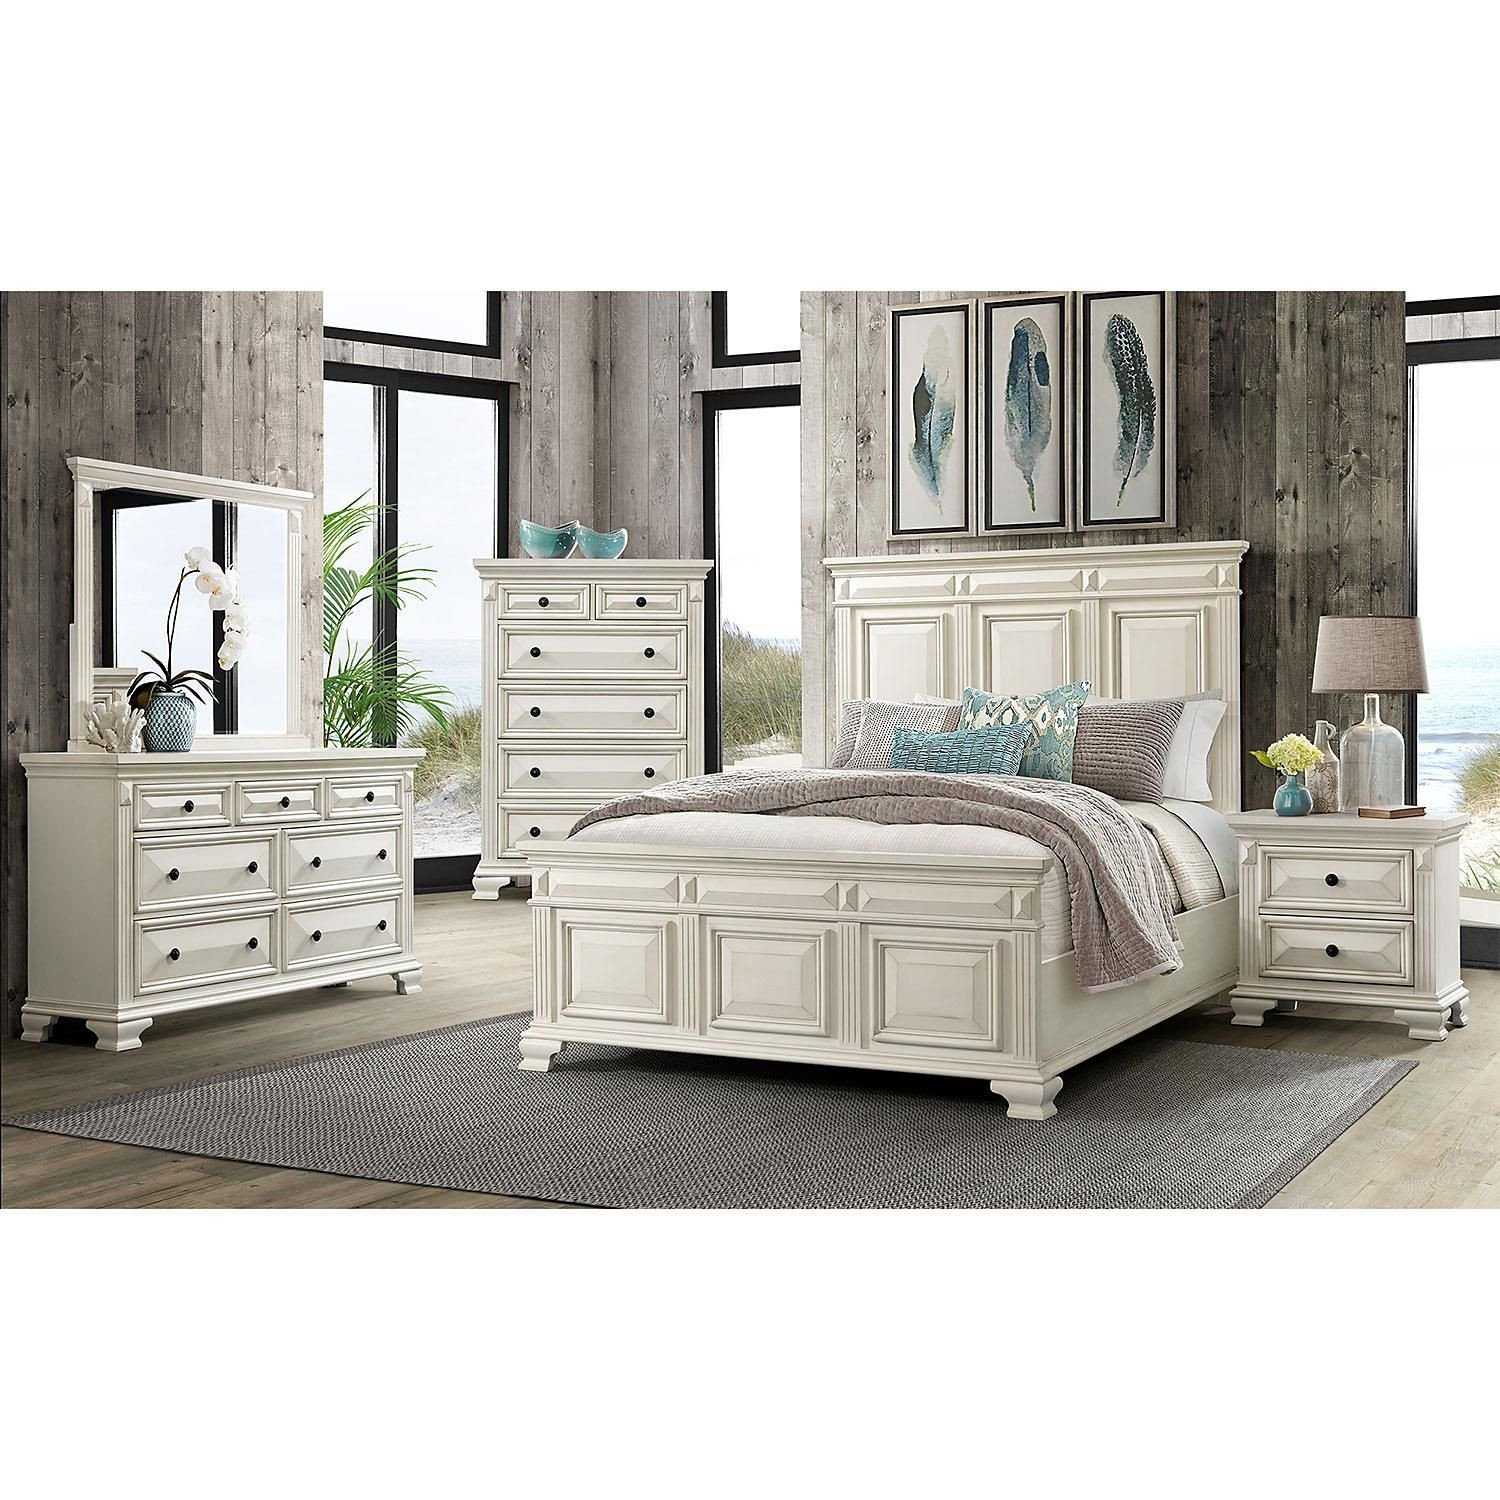 King Size Bedroom Set for Sale New $1599 00 society Den Trent Panel 6 Piece King Bedroom Set